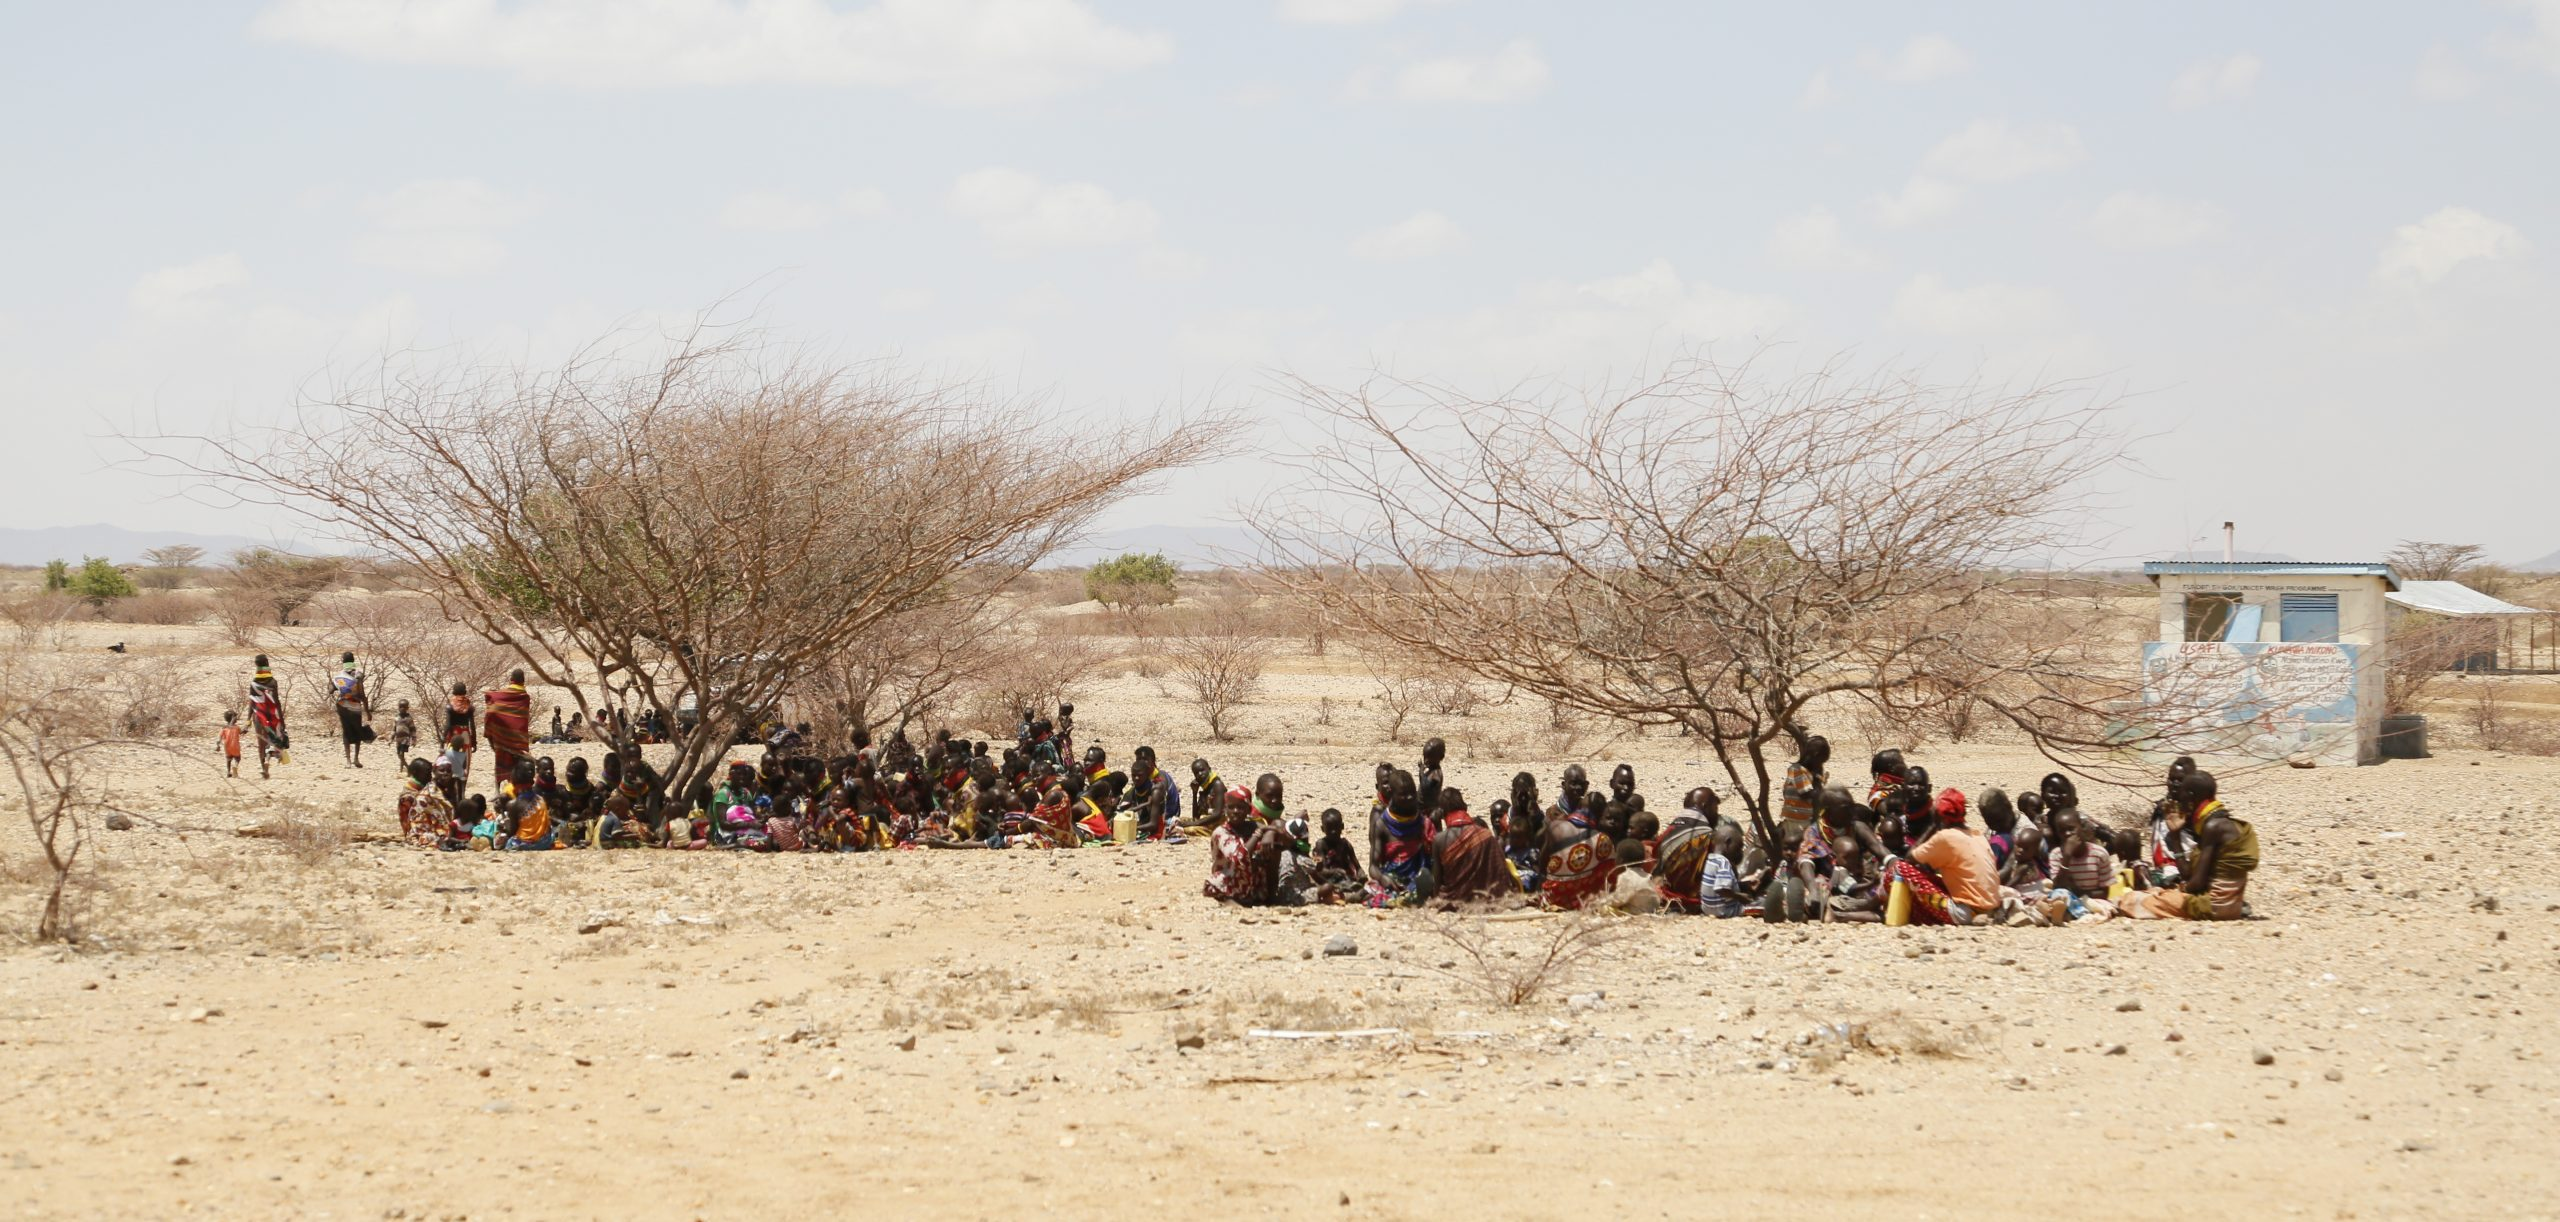 Two bare trees in an arid landscape provide little shelter for two large groups women and children sitting on the group